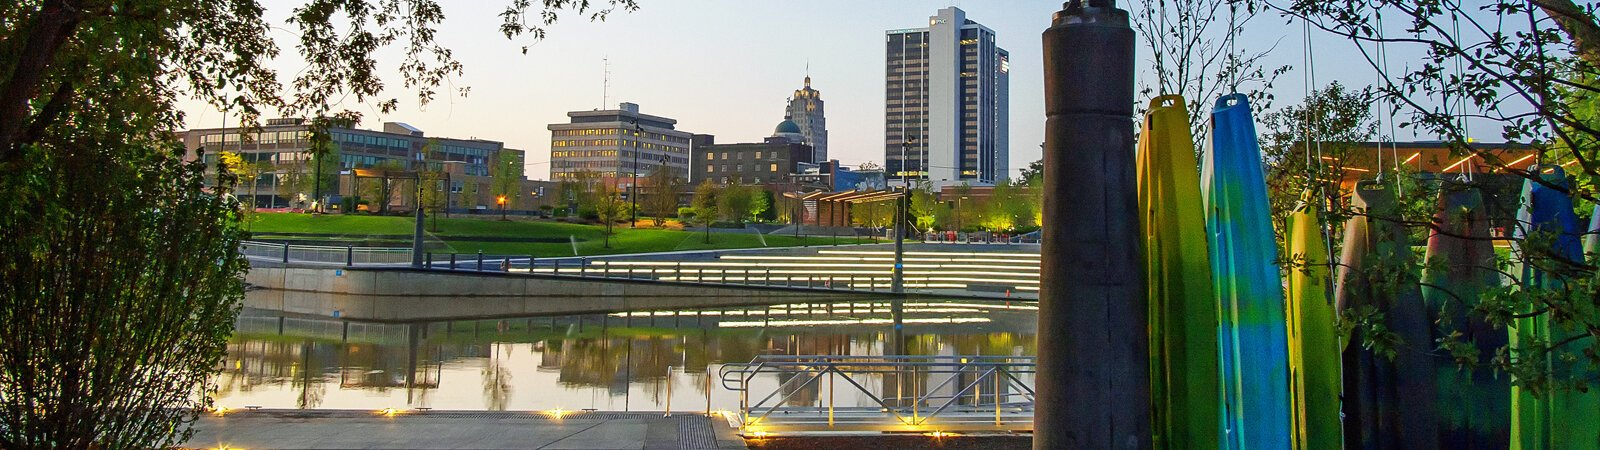 Riverfront Fort Wayne's Promenade Park opened in August 2019.